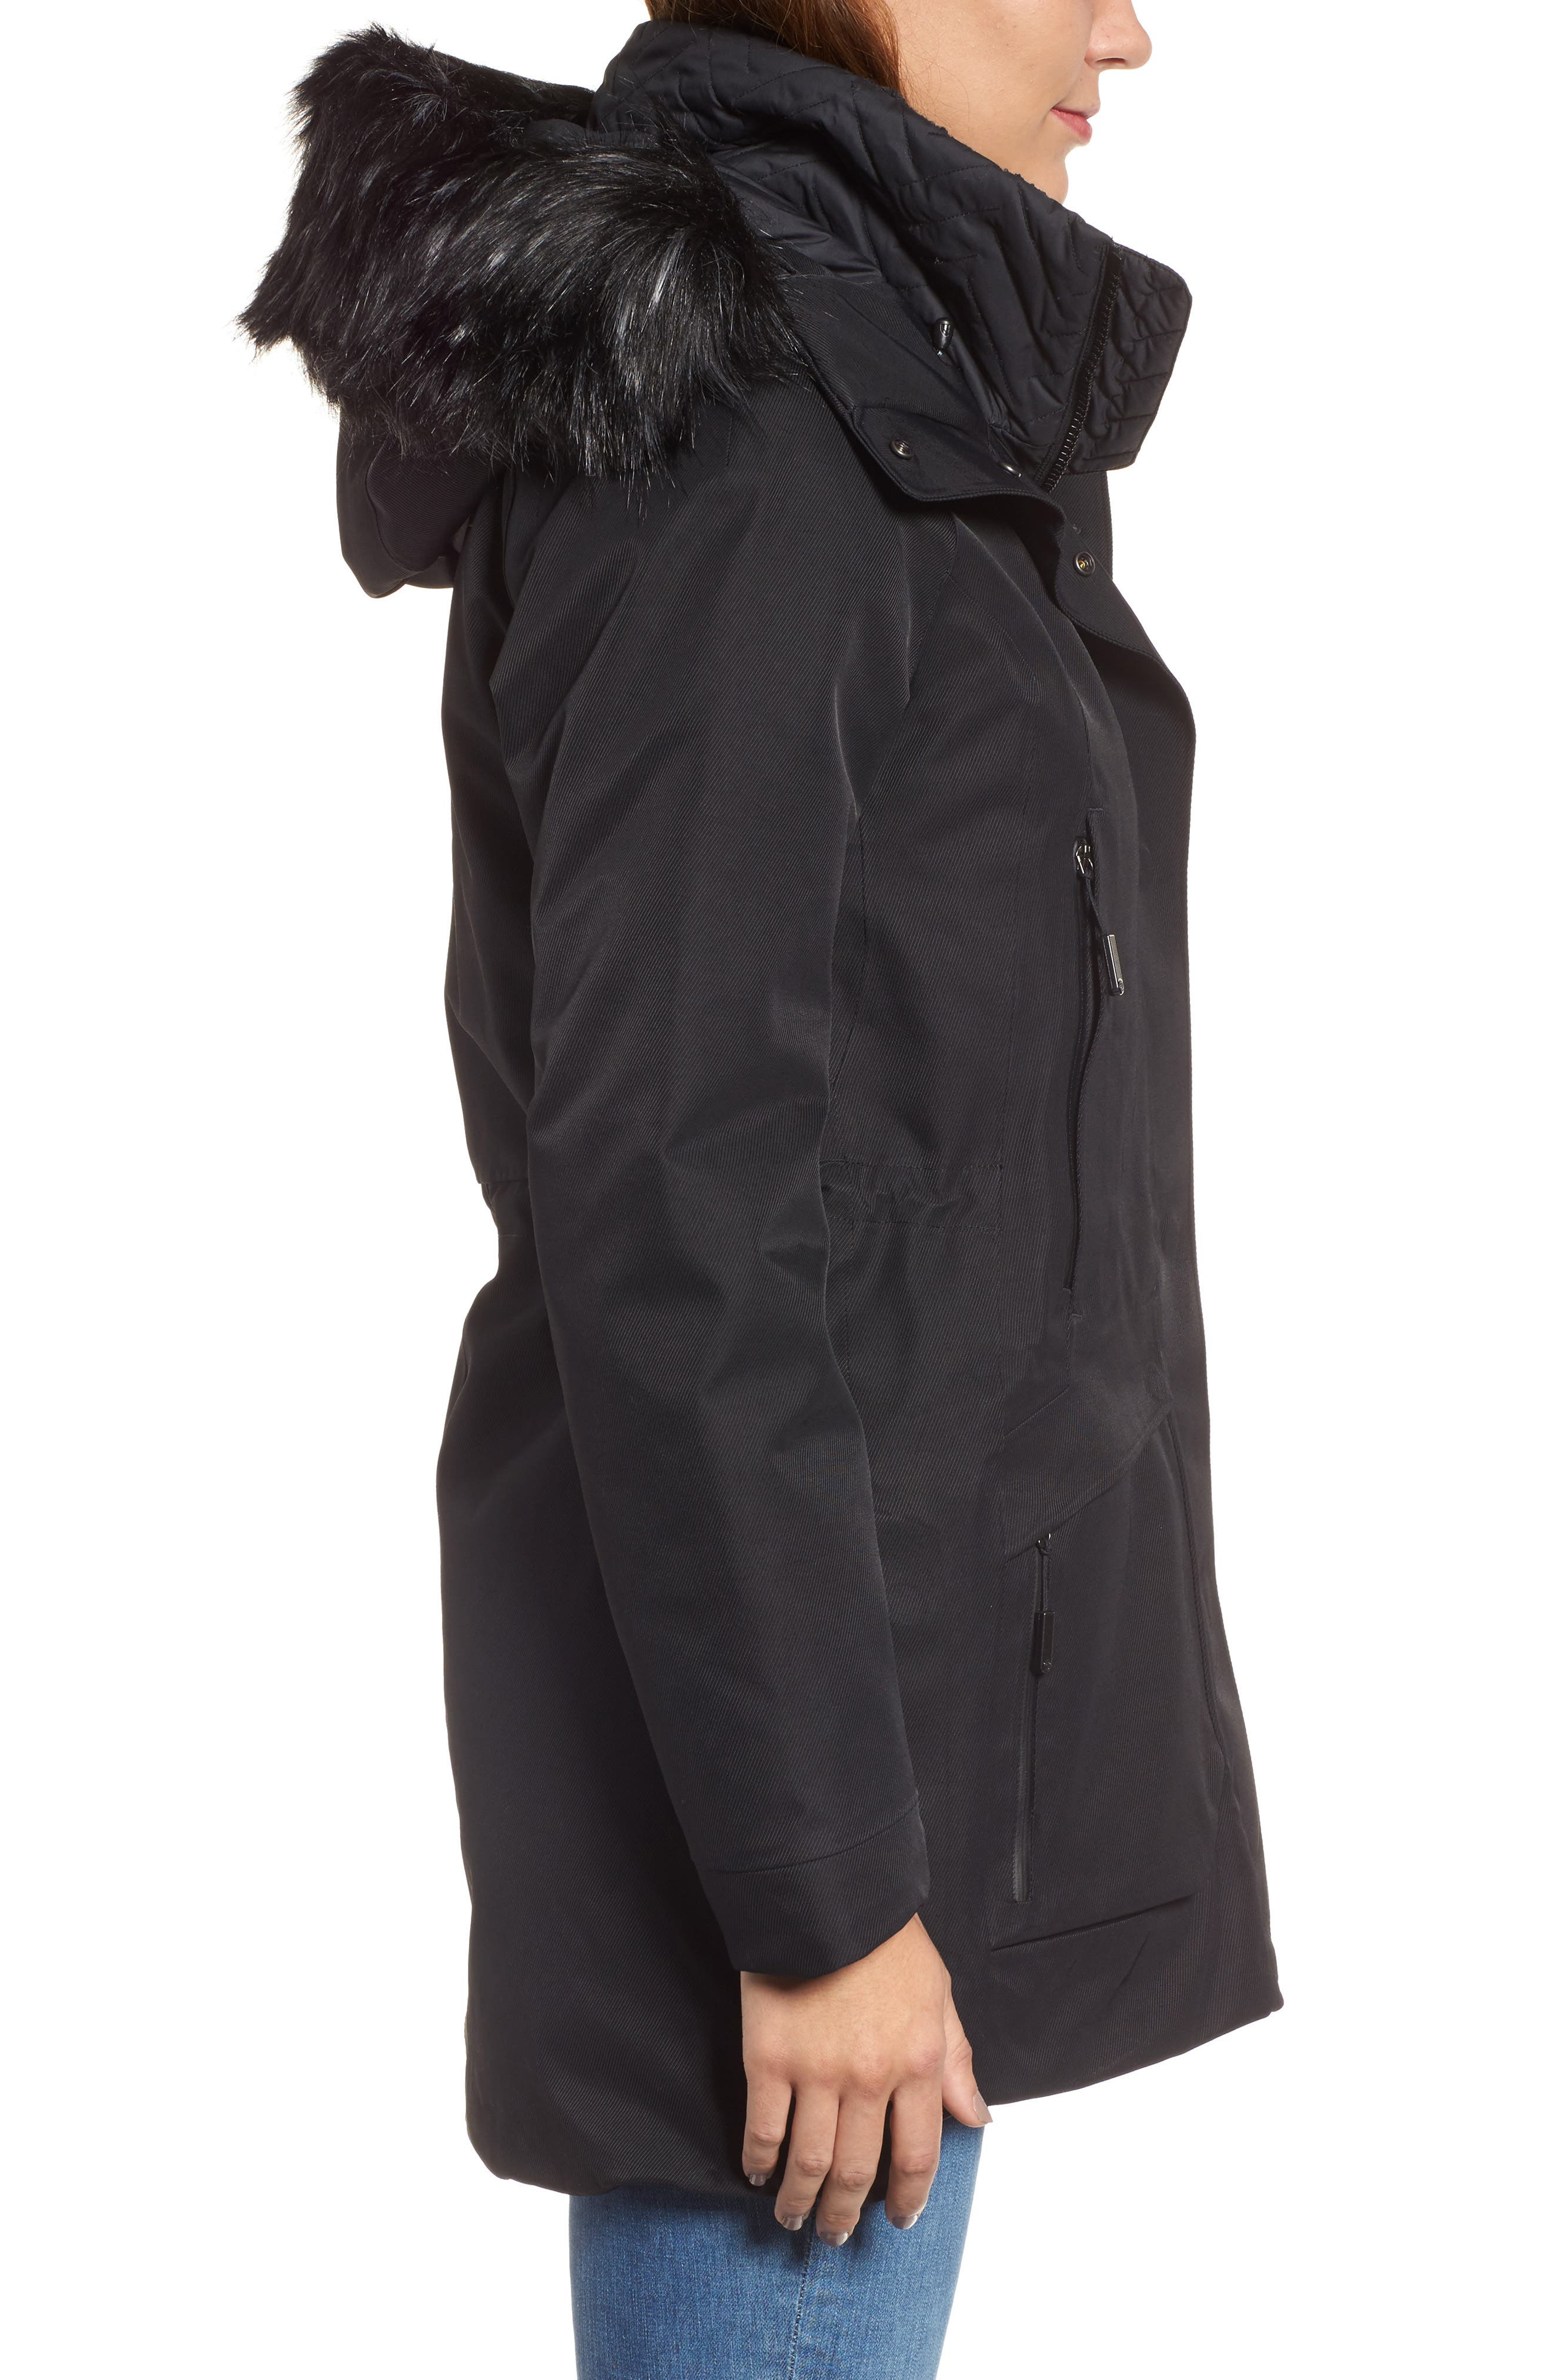 Cryos Gore-Tex<sup>®</sup> Tri-Climate PrimaLoft Gold Insulated Waterproof & Windproof Jacket,                             Alternate thumbnail 3, color,                             Black